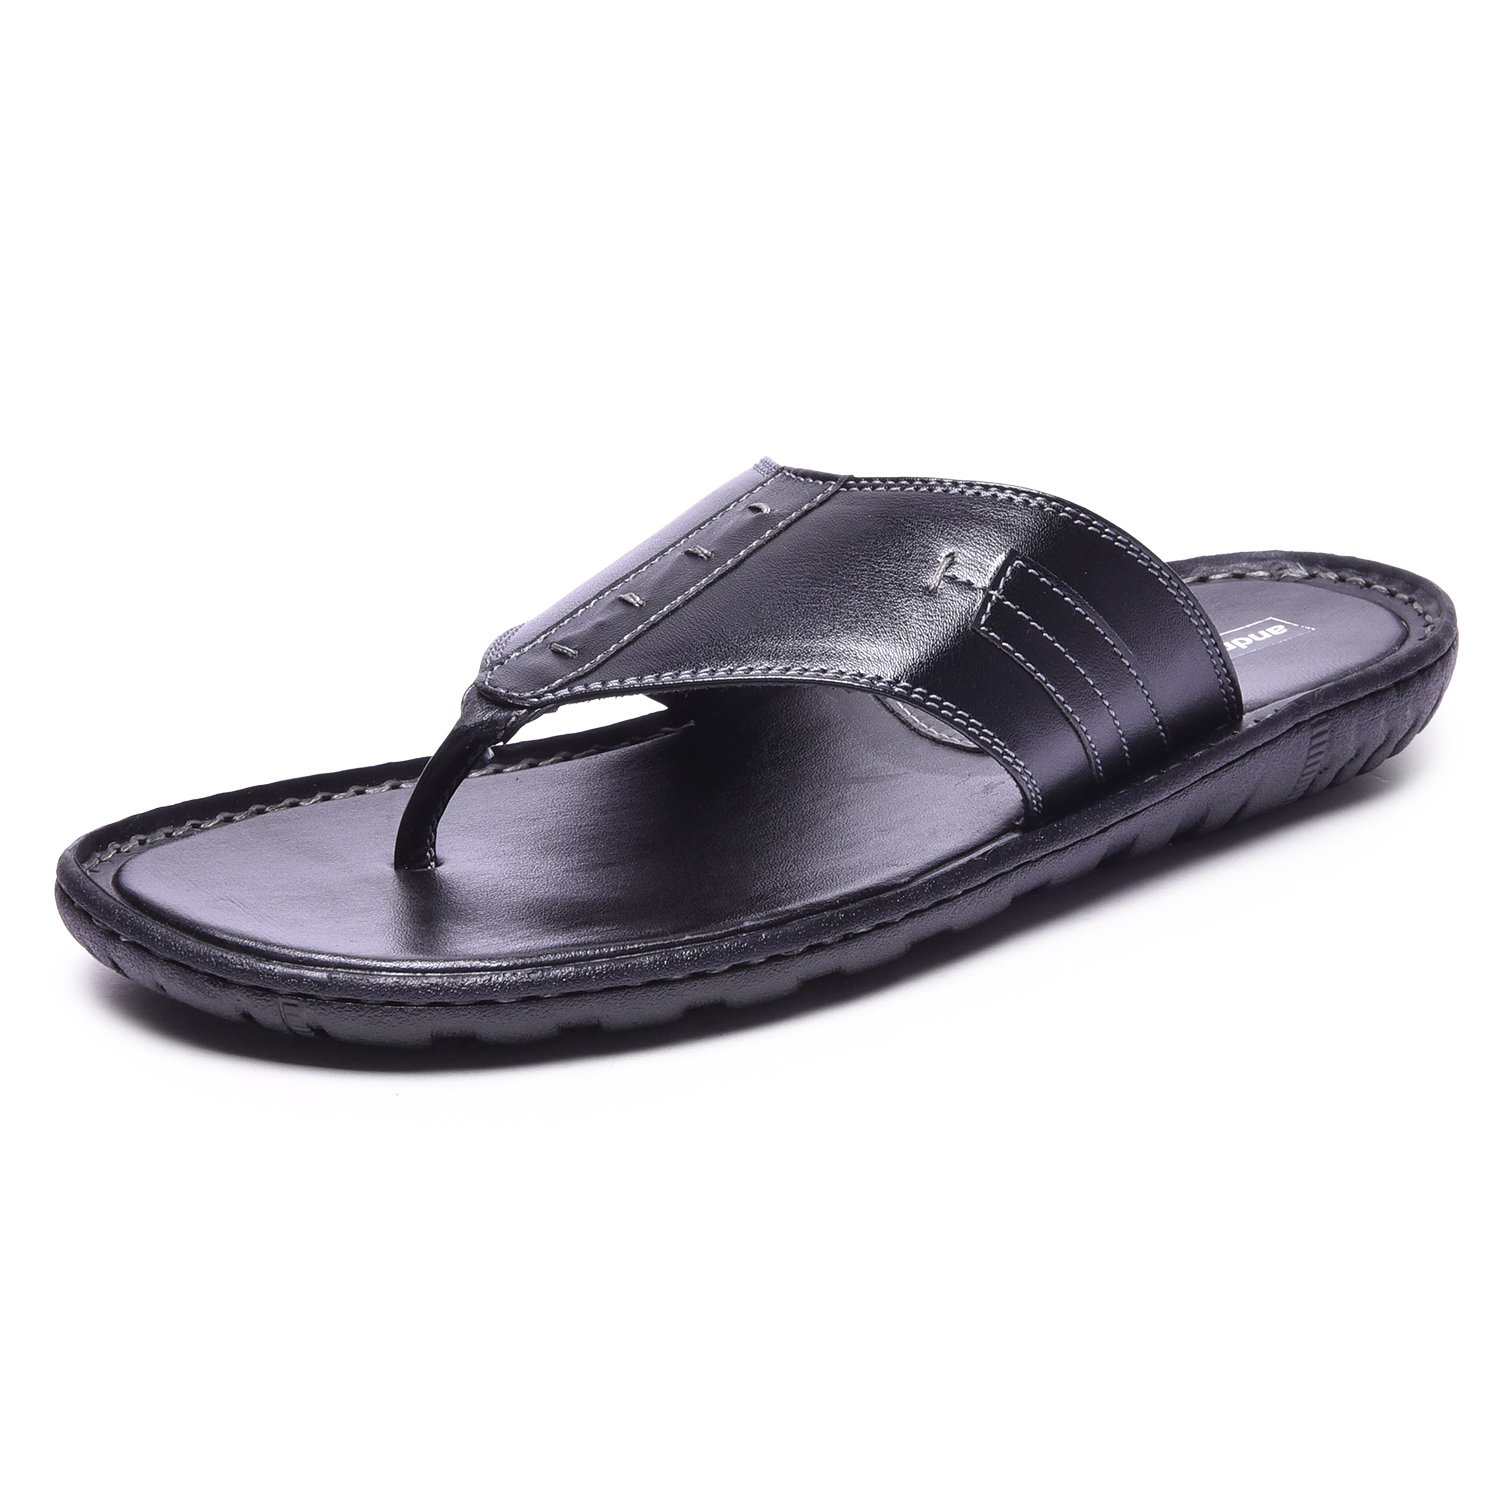 7cb73f4b12bfdc Andrew Scott Men s Slippers  Buy Online at Low Prices in India - Amazon.in